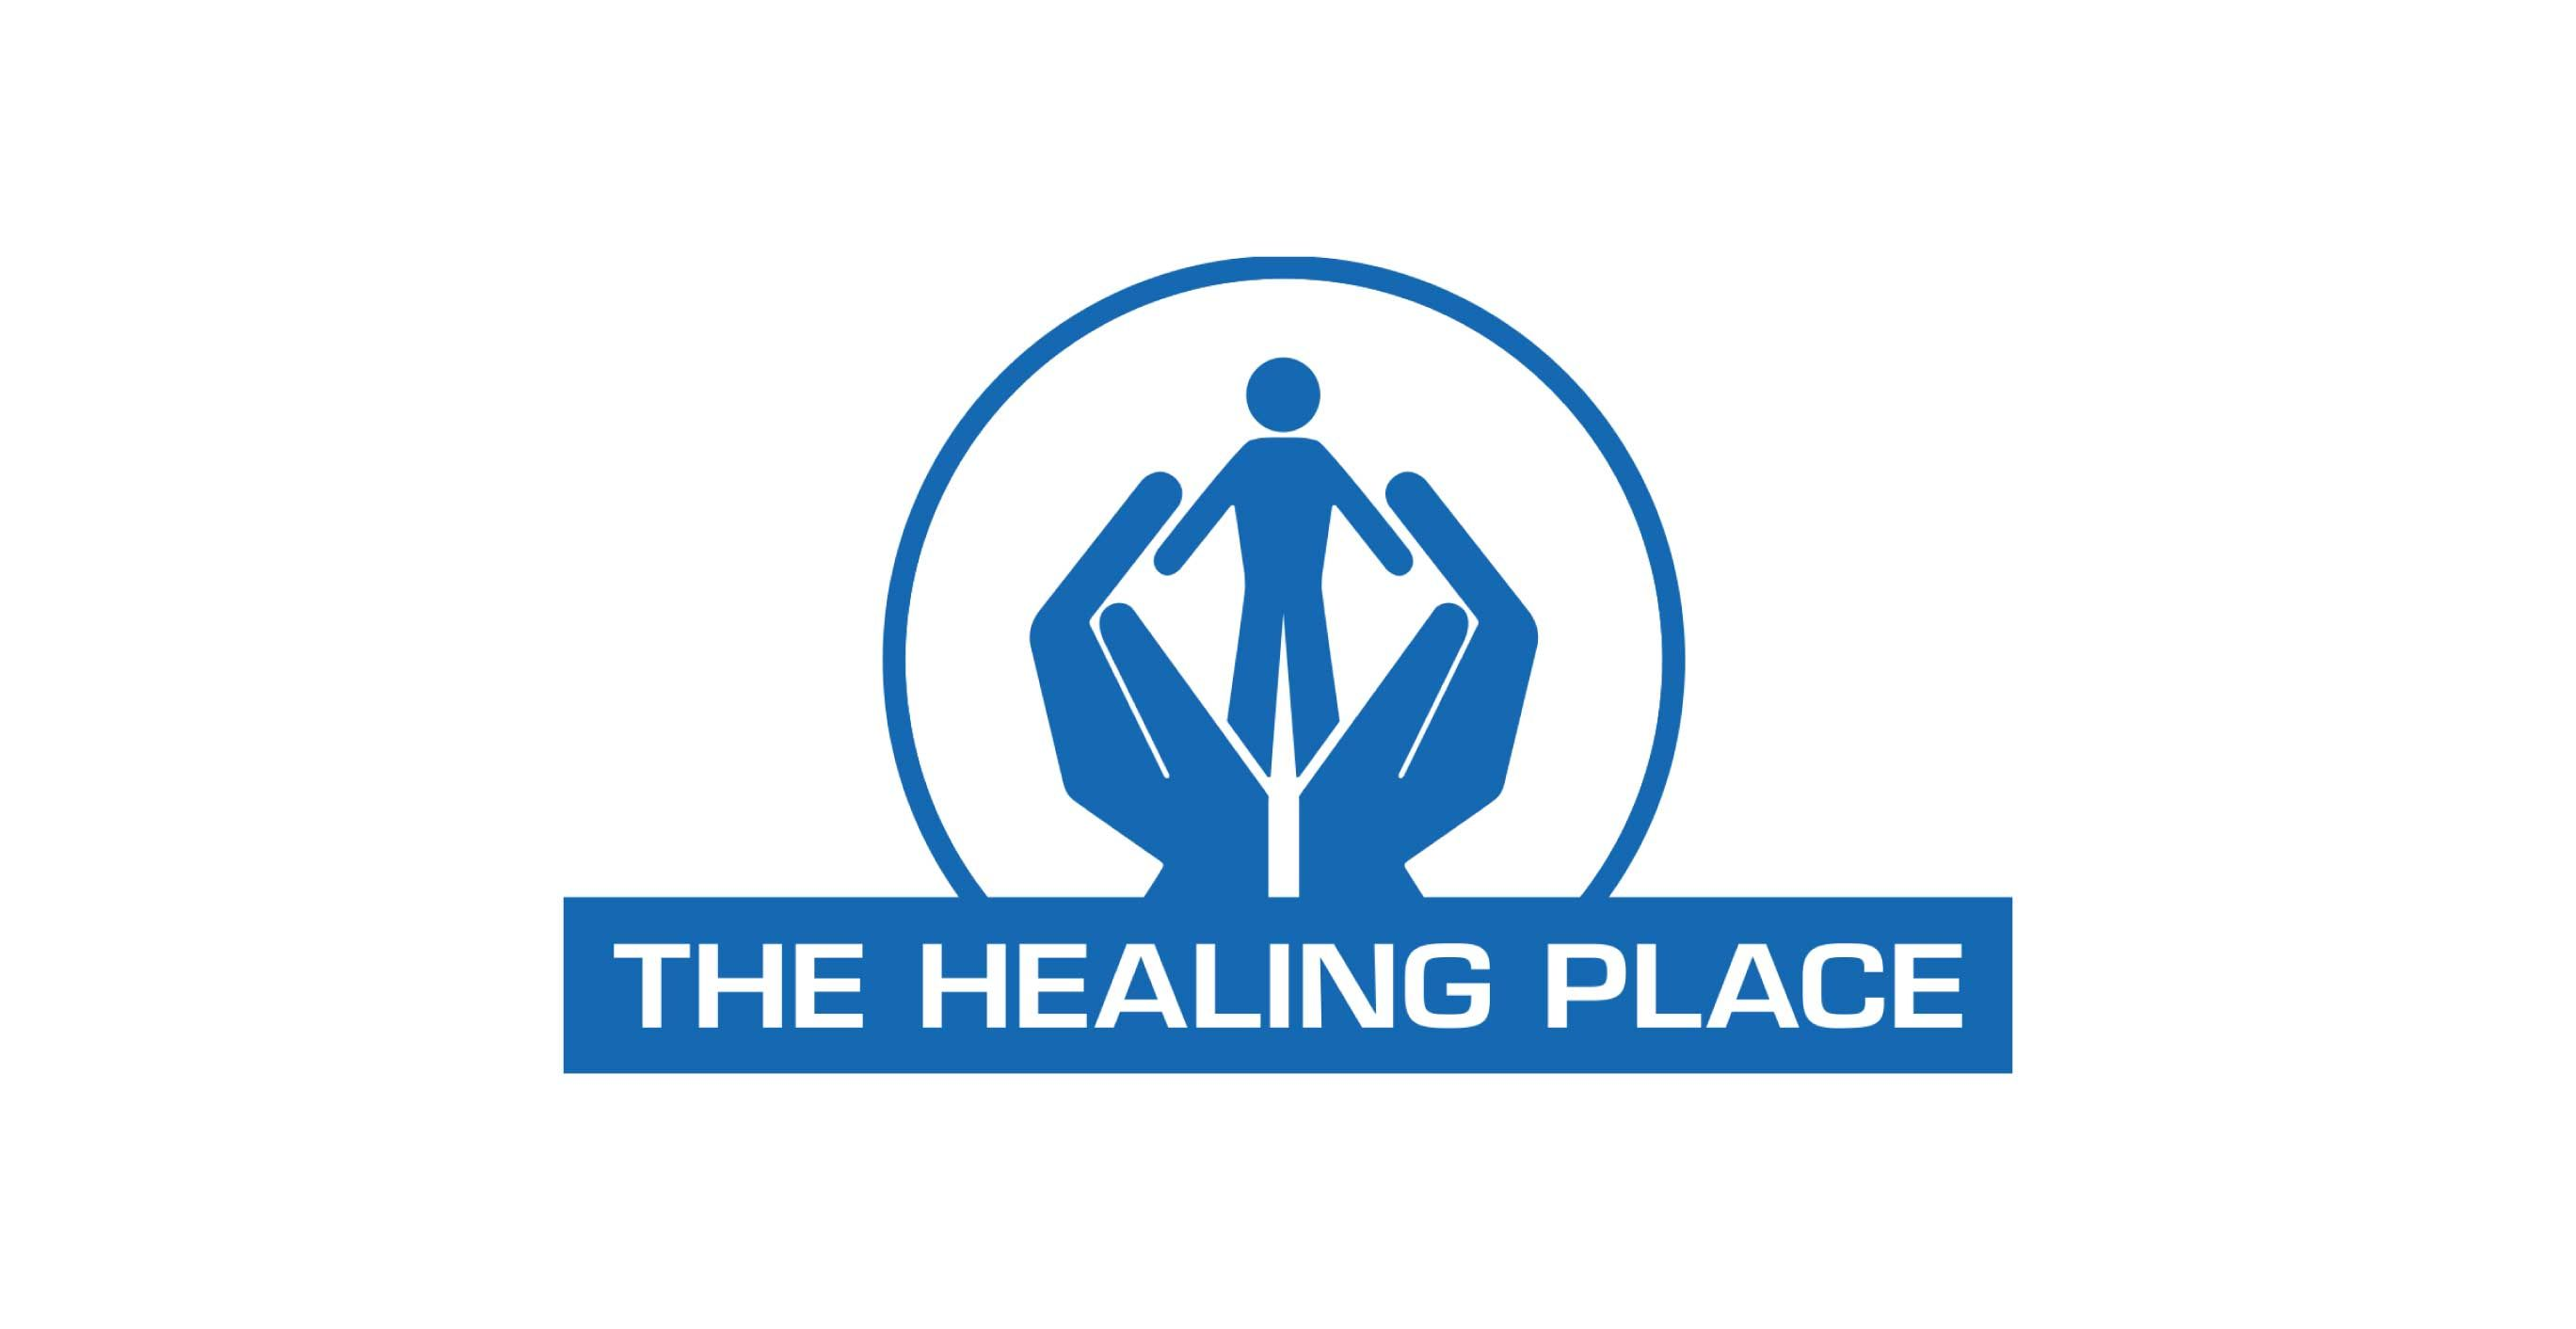 Giving: The Healing Place